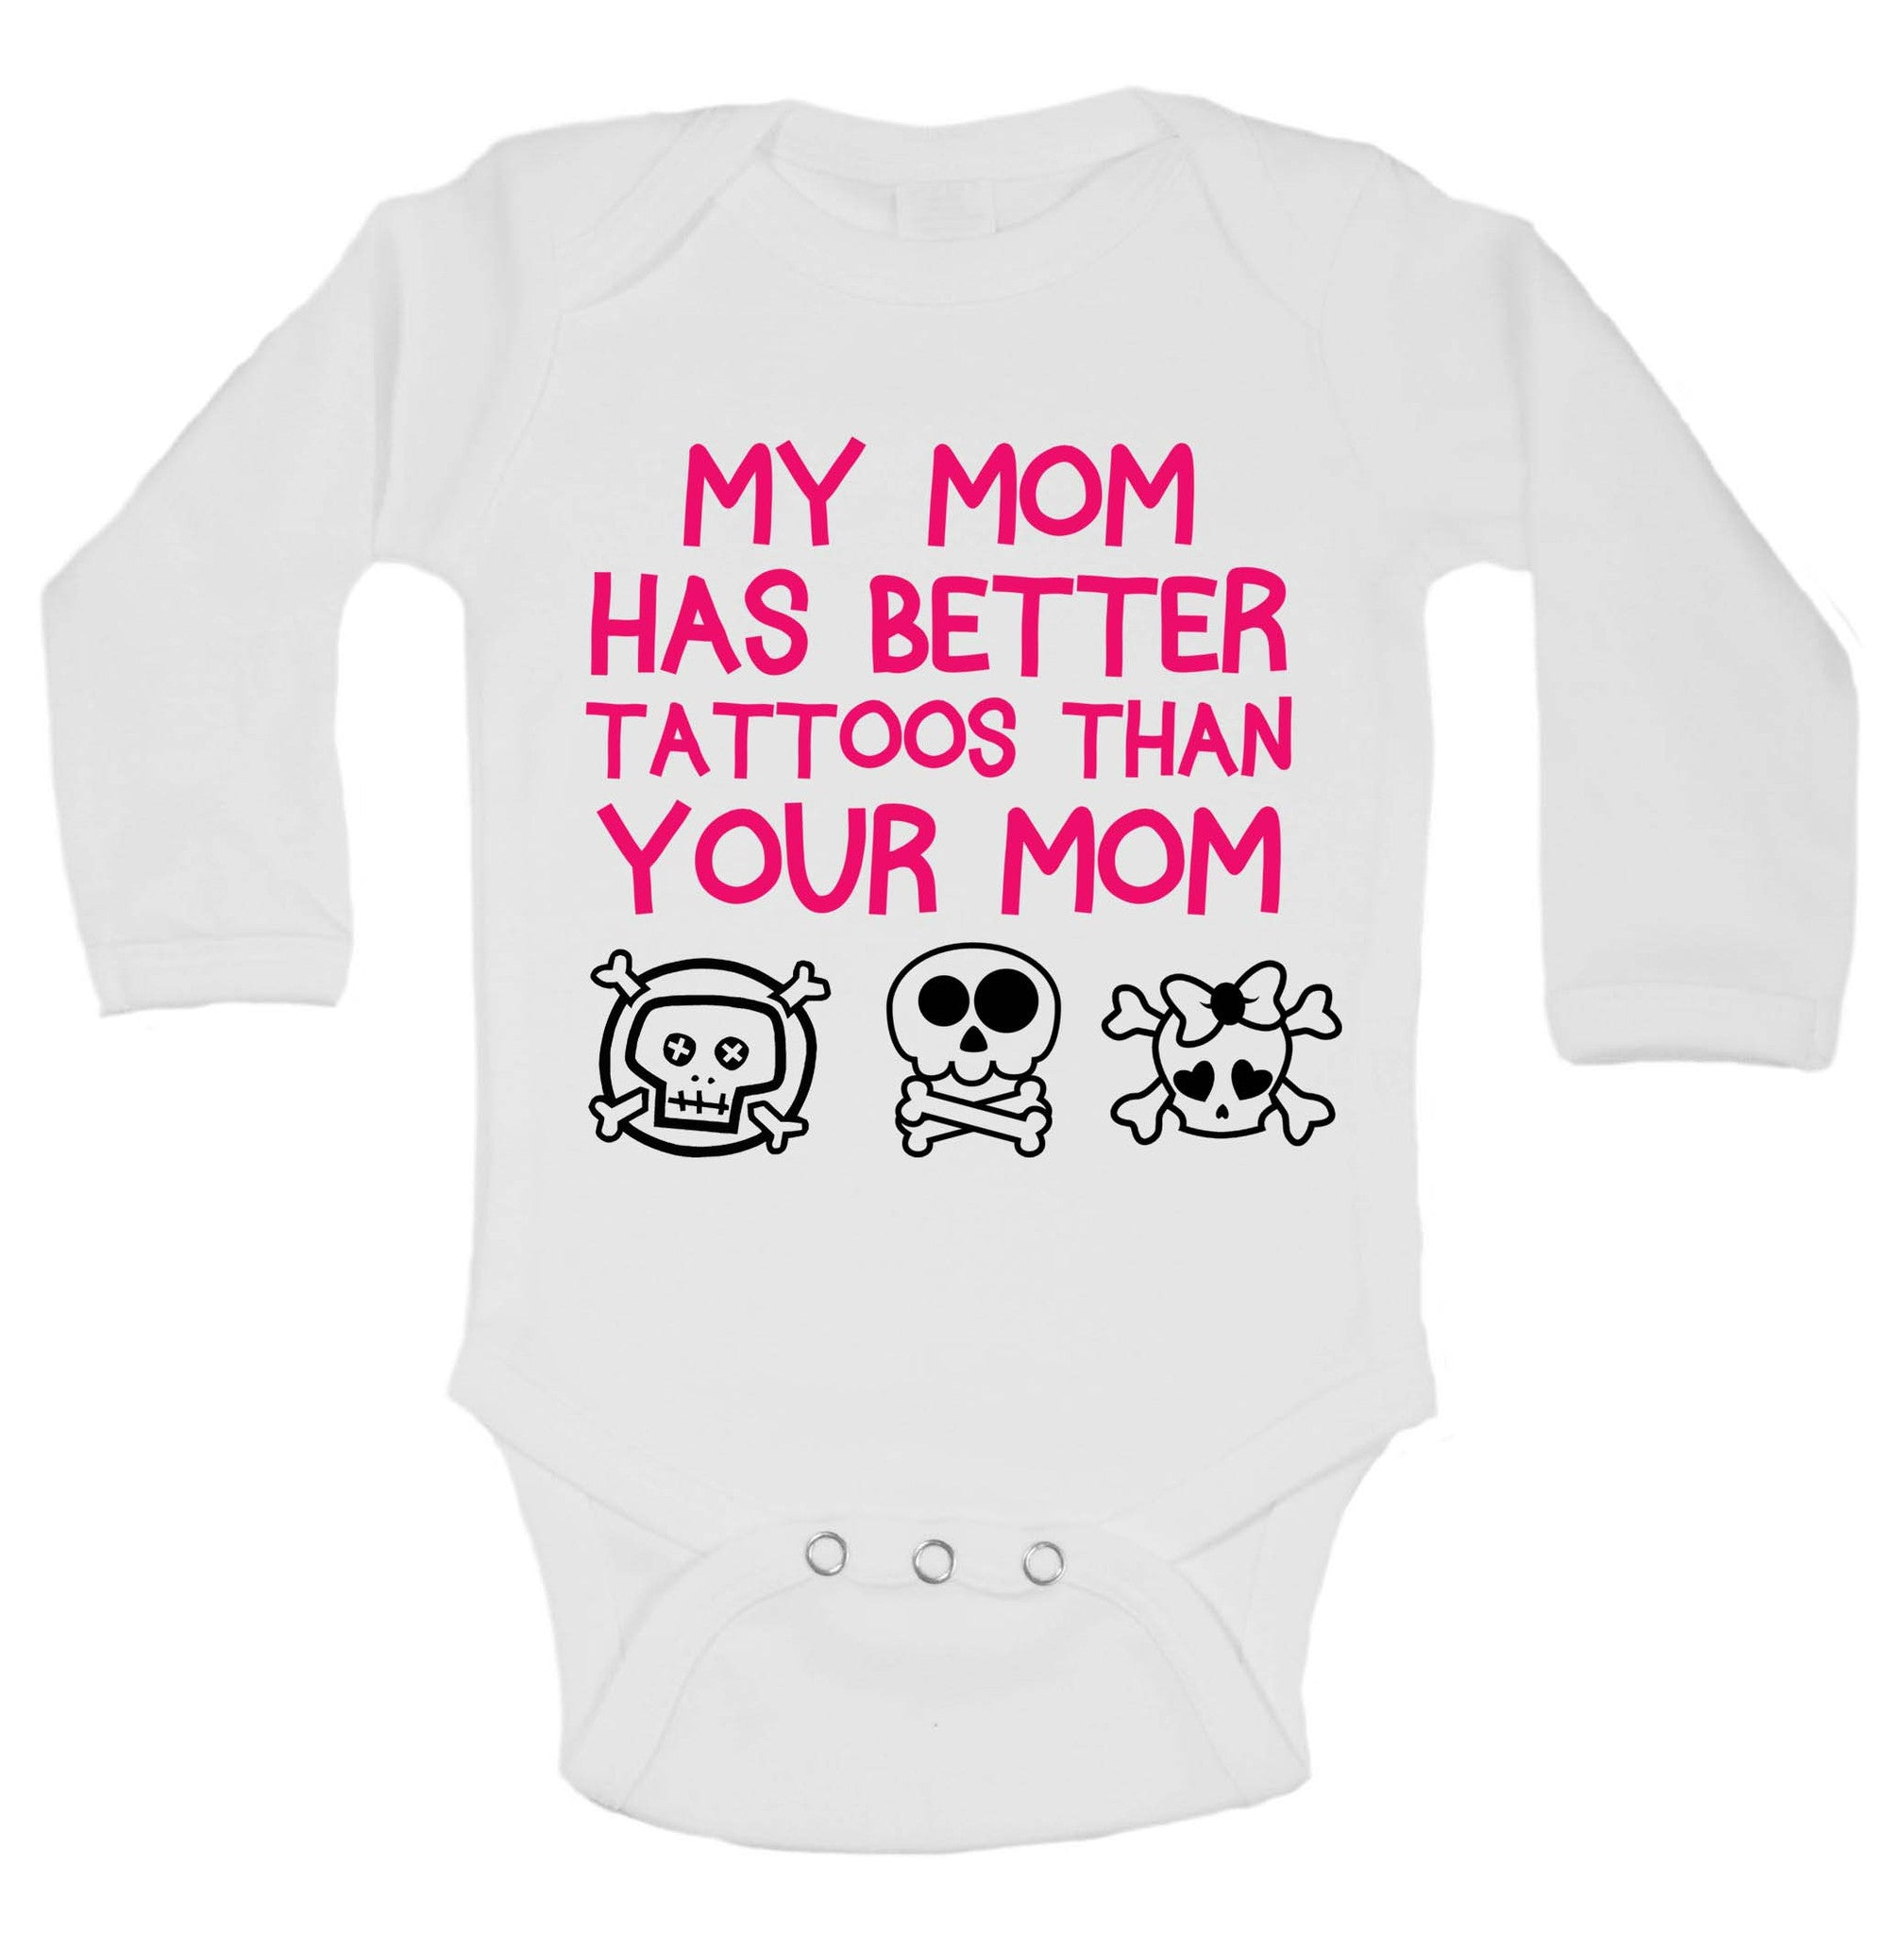 My Mom Has Better Tattoos Than Your Mom Funny Kids Onesie - 174 - Funny Shirts Tank Tops Burnouts and Triblends  - 1